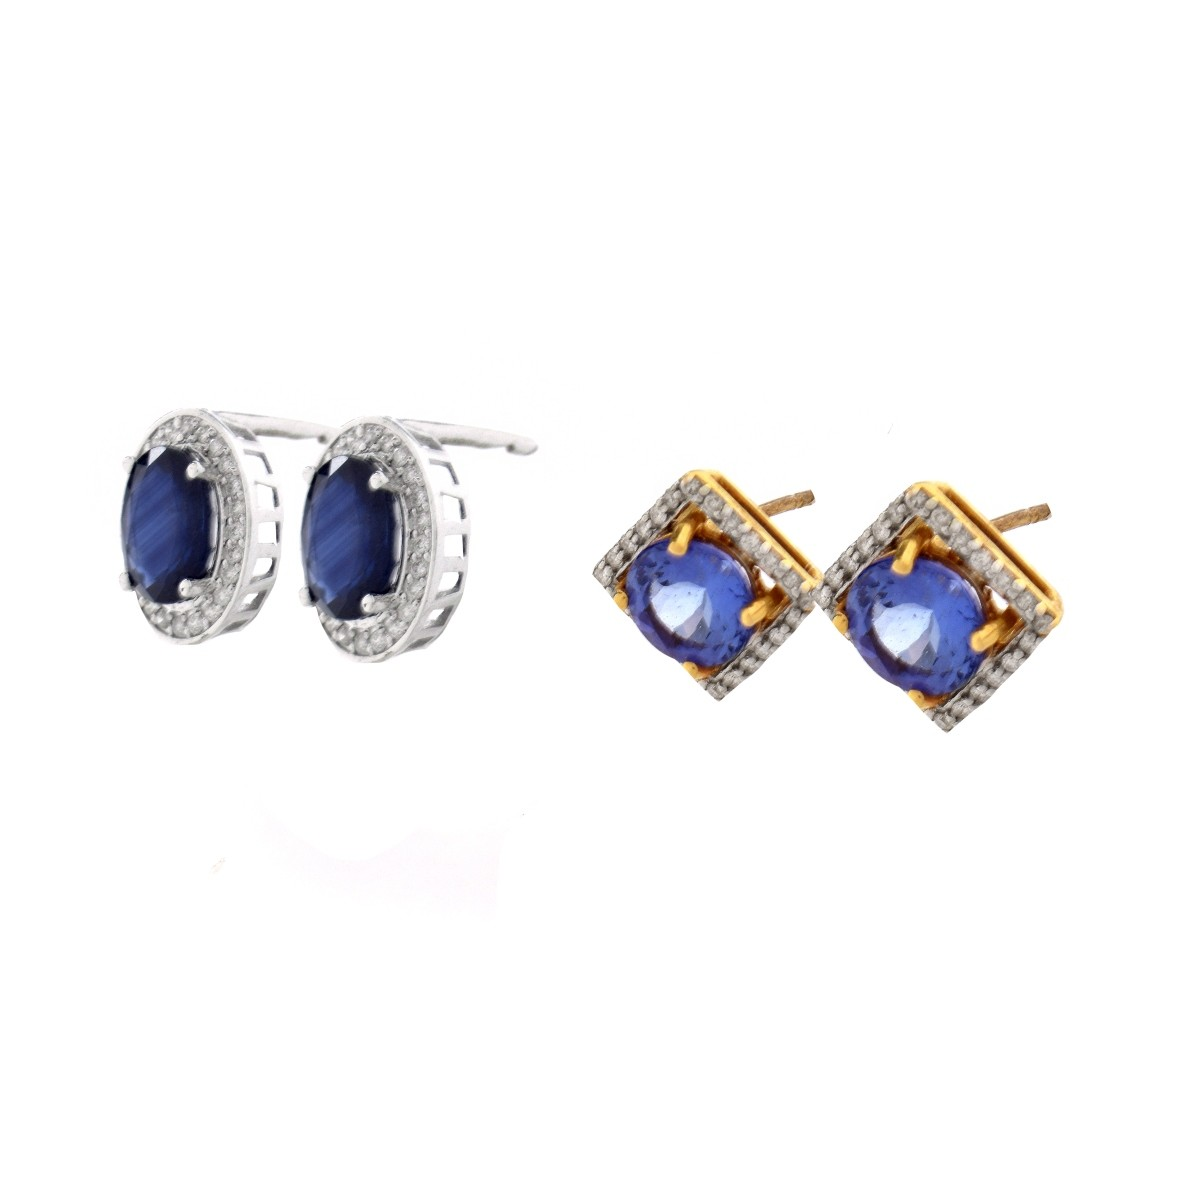 Two Pair of Gemstone and Diamond Ear Studs